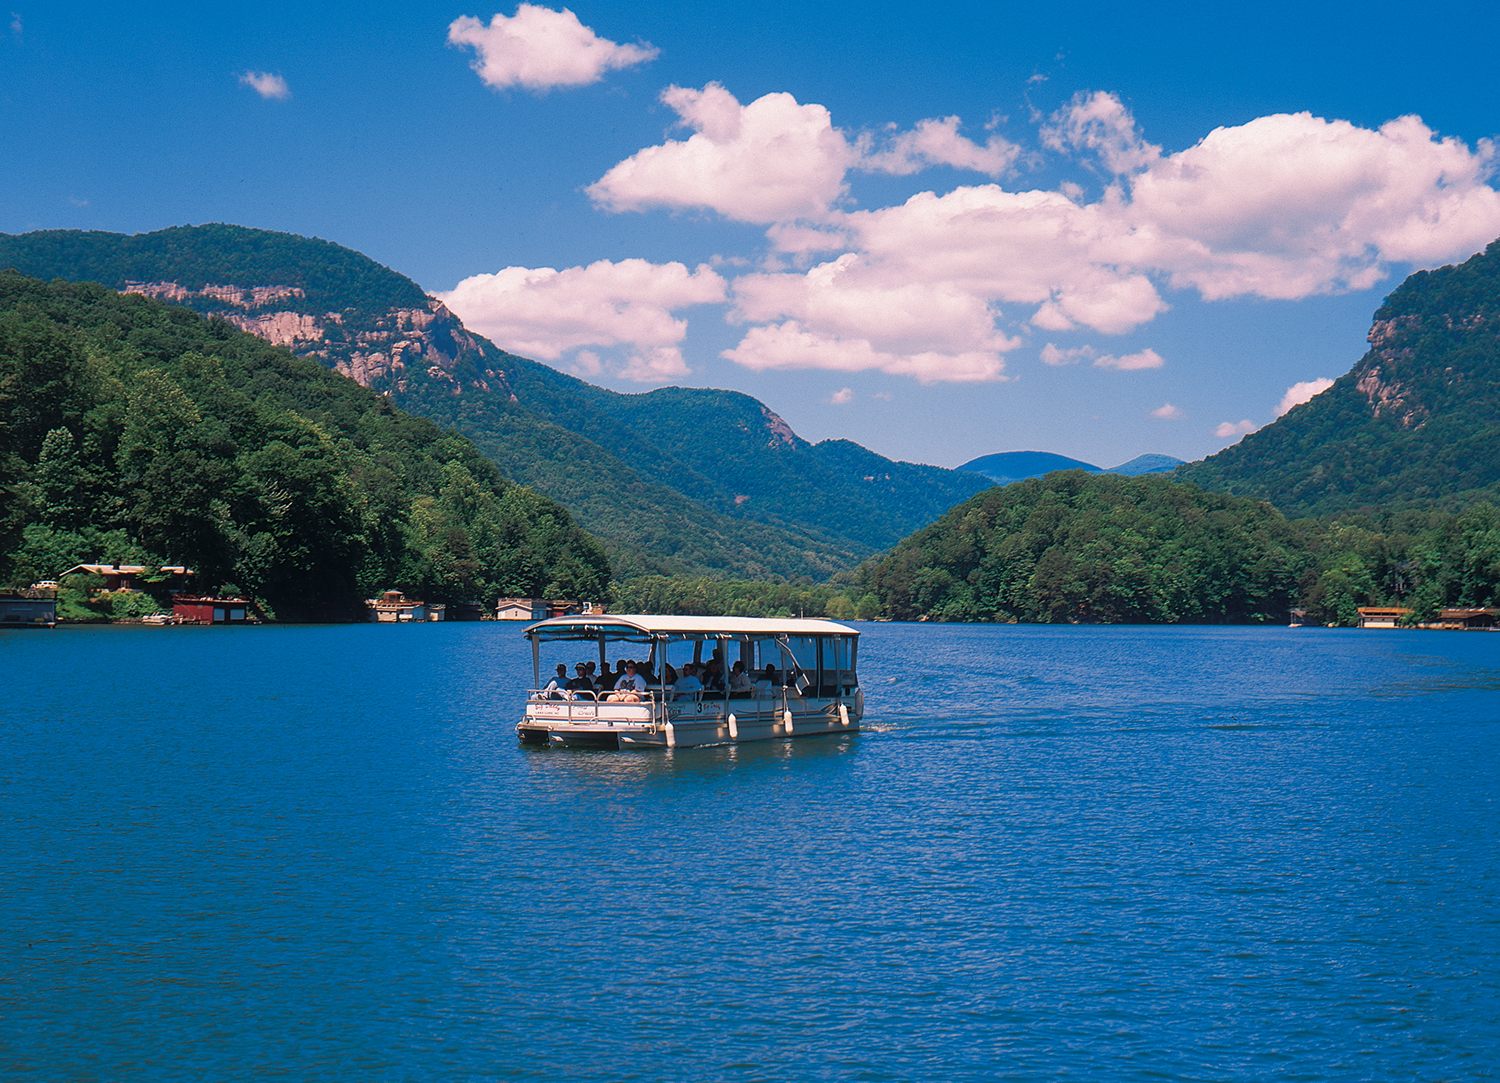 Lake lure north carolina for Lake lure arts crafts festival